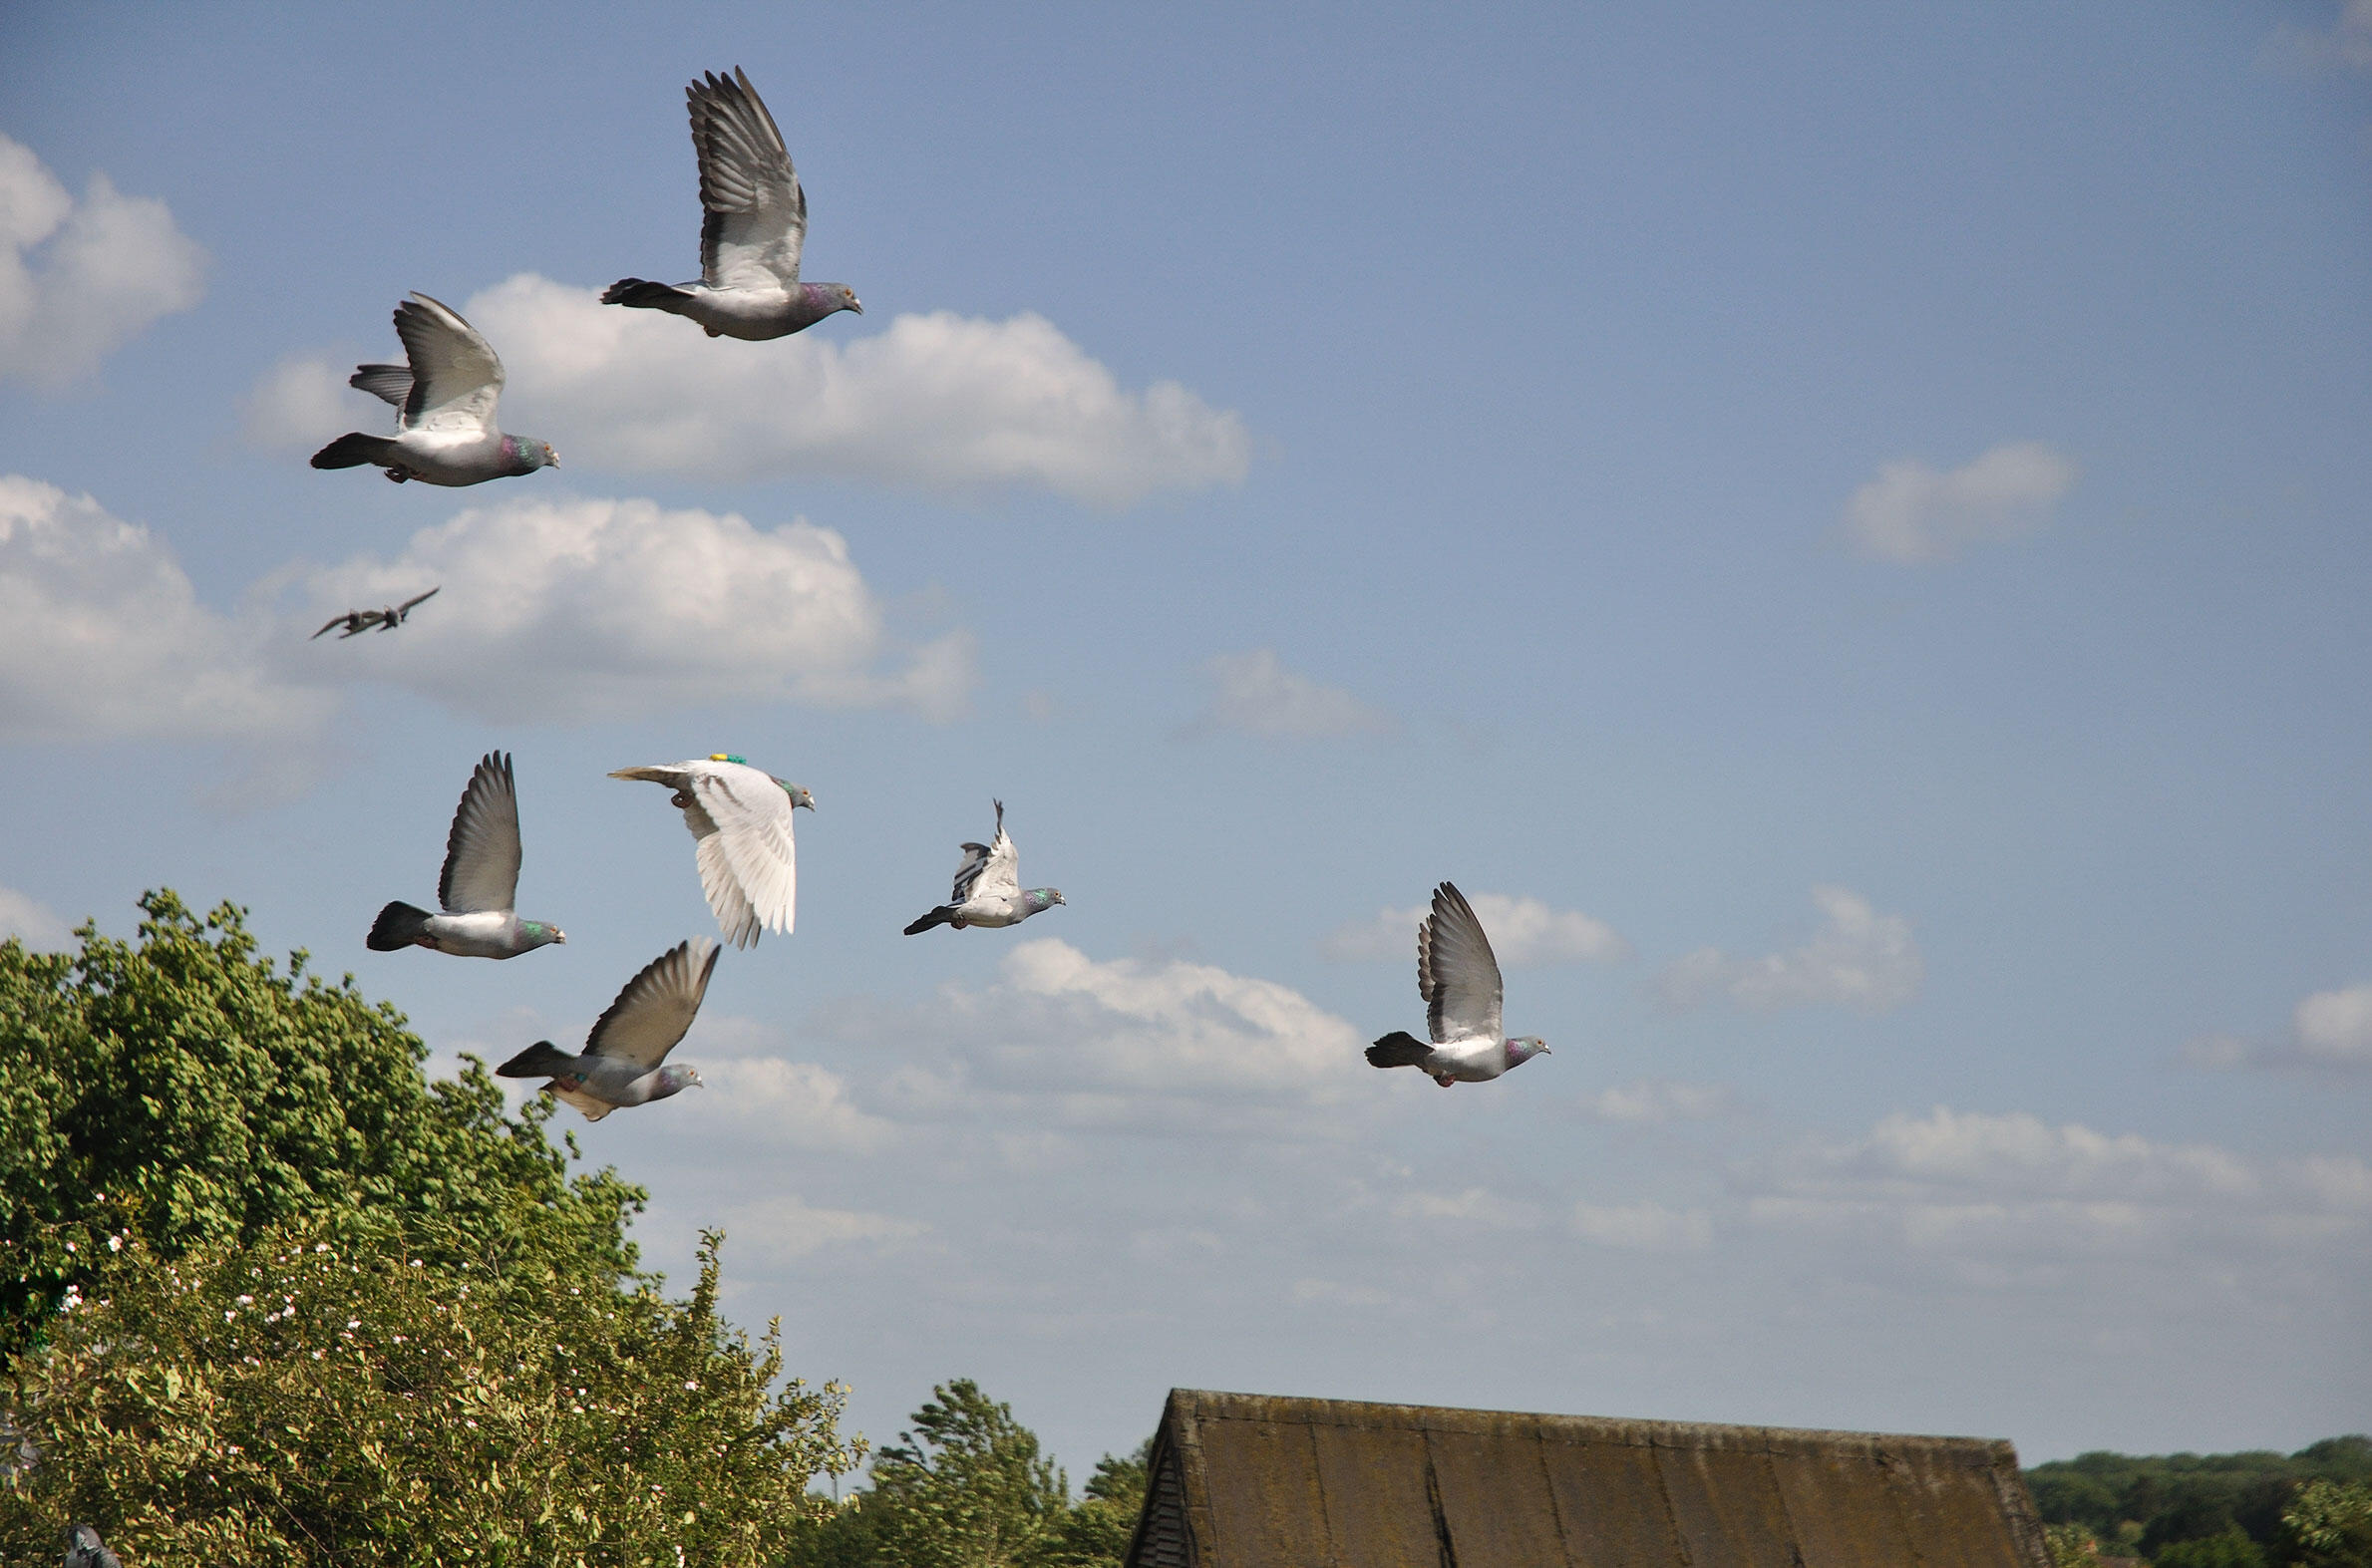 Flexible flock hierarchy lets homing pigeons collectively navigate home despite incompetent leaders. Zsuzsa Ákos